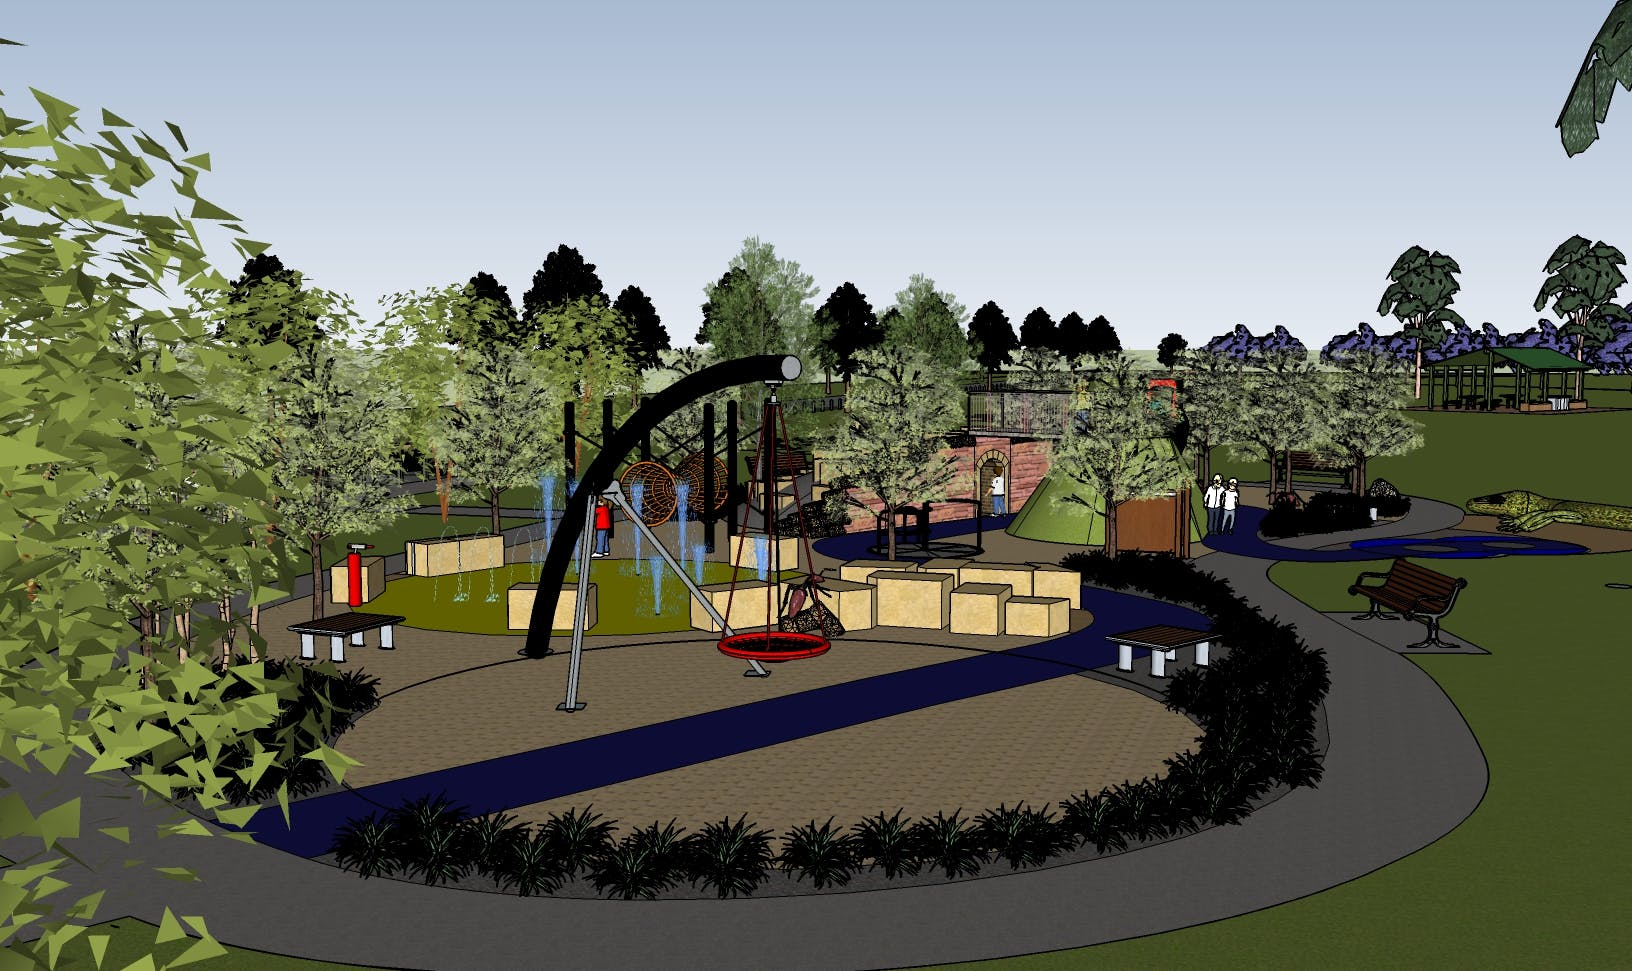 Council will be upgrading the playground at Governor Phillip Park Windsor, with the playground works to be completed in 2018.